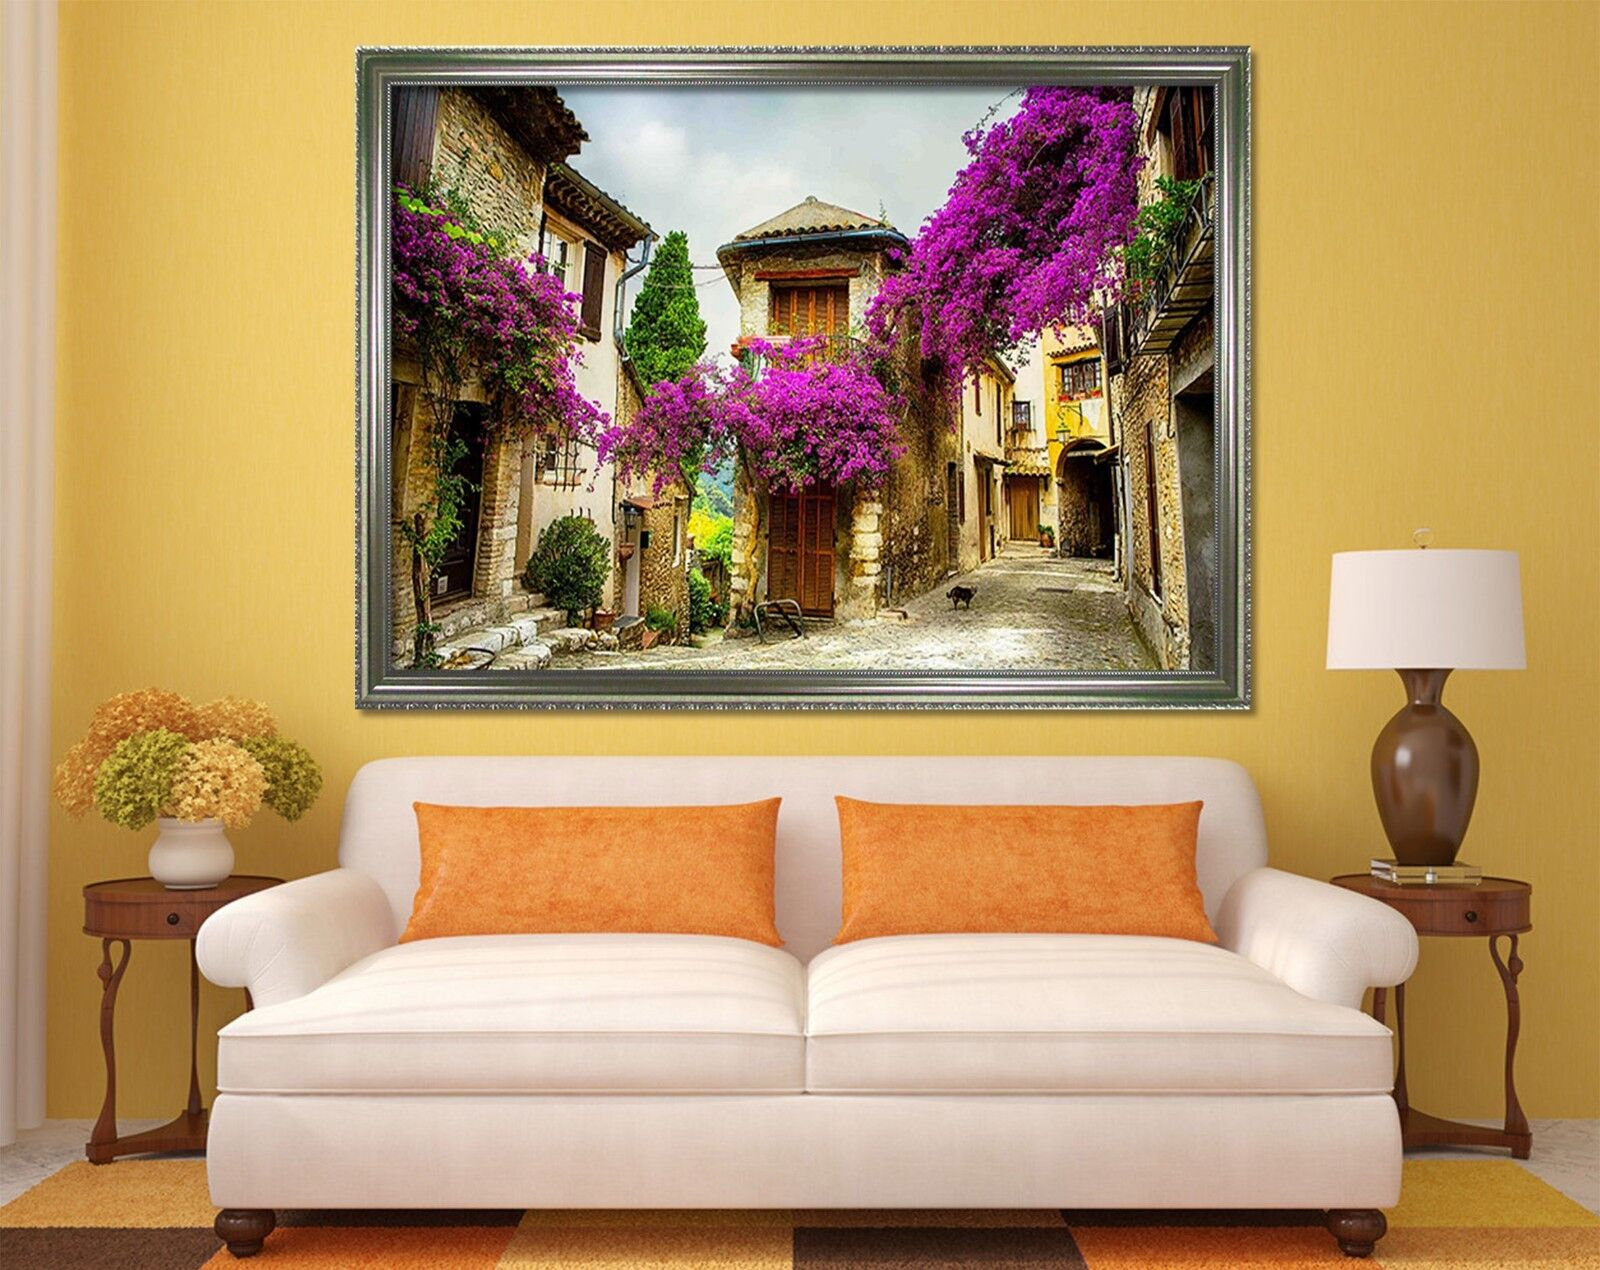 3D Ancient Town Alley 2 Framed Poster Home Decor Print Painting Art AJ WALLPAPER